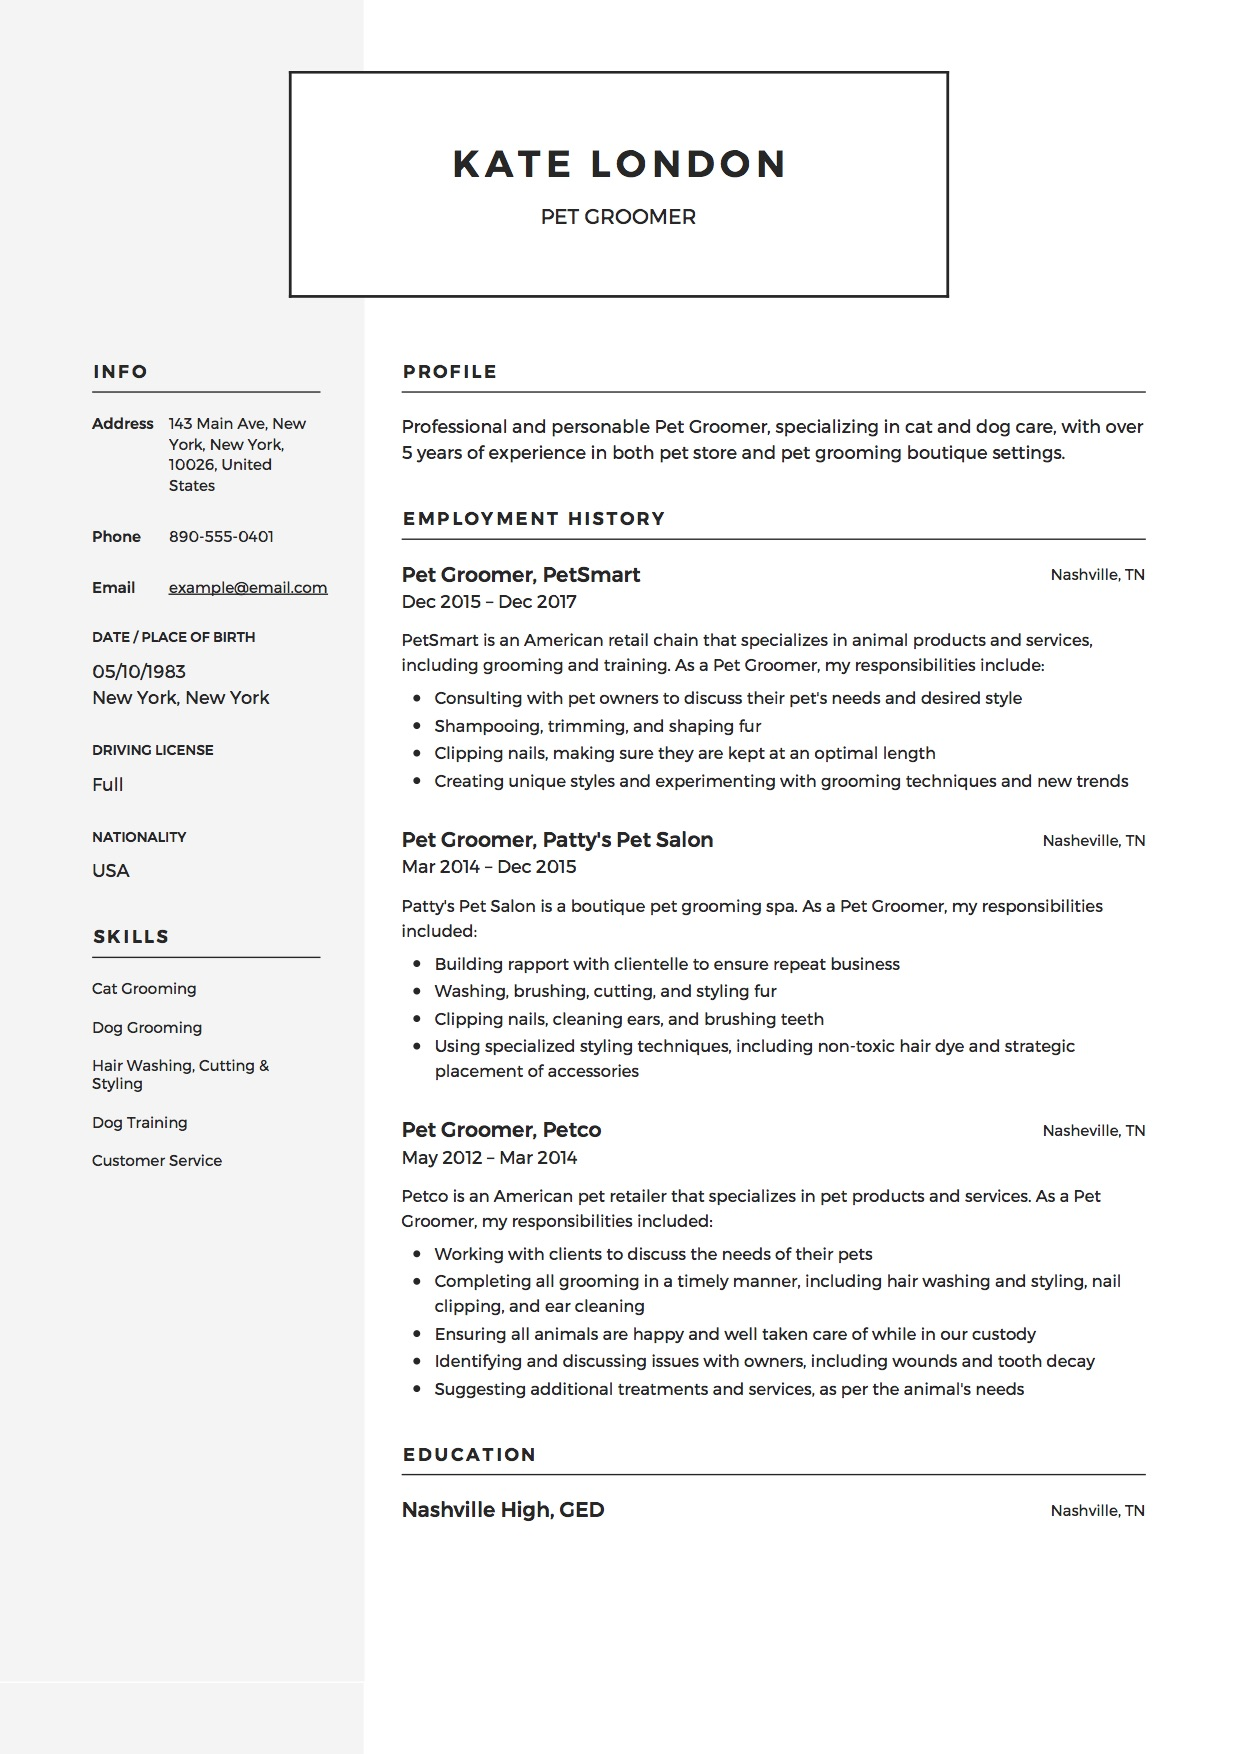 12 x pet groomer resume templates